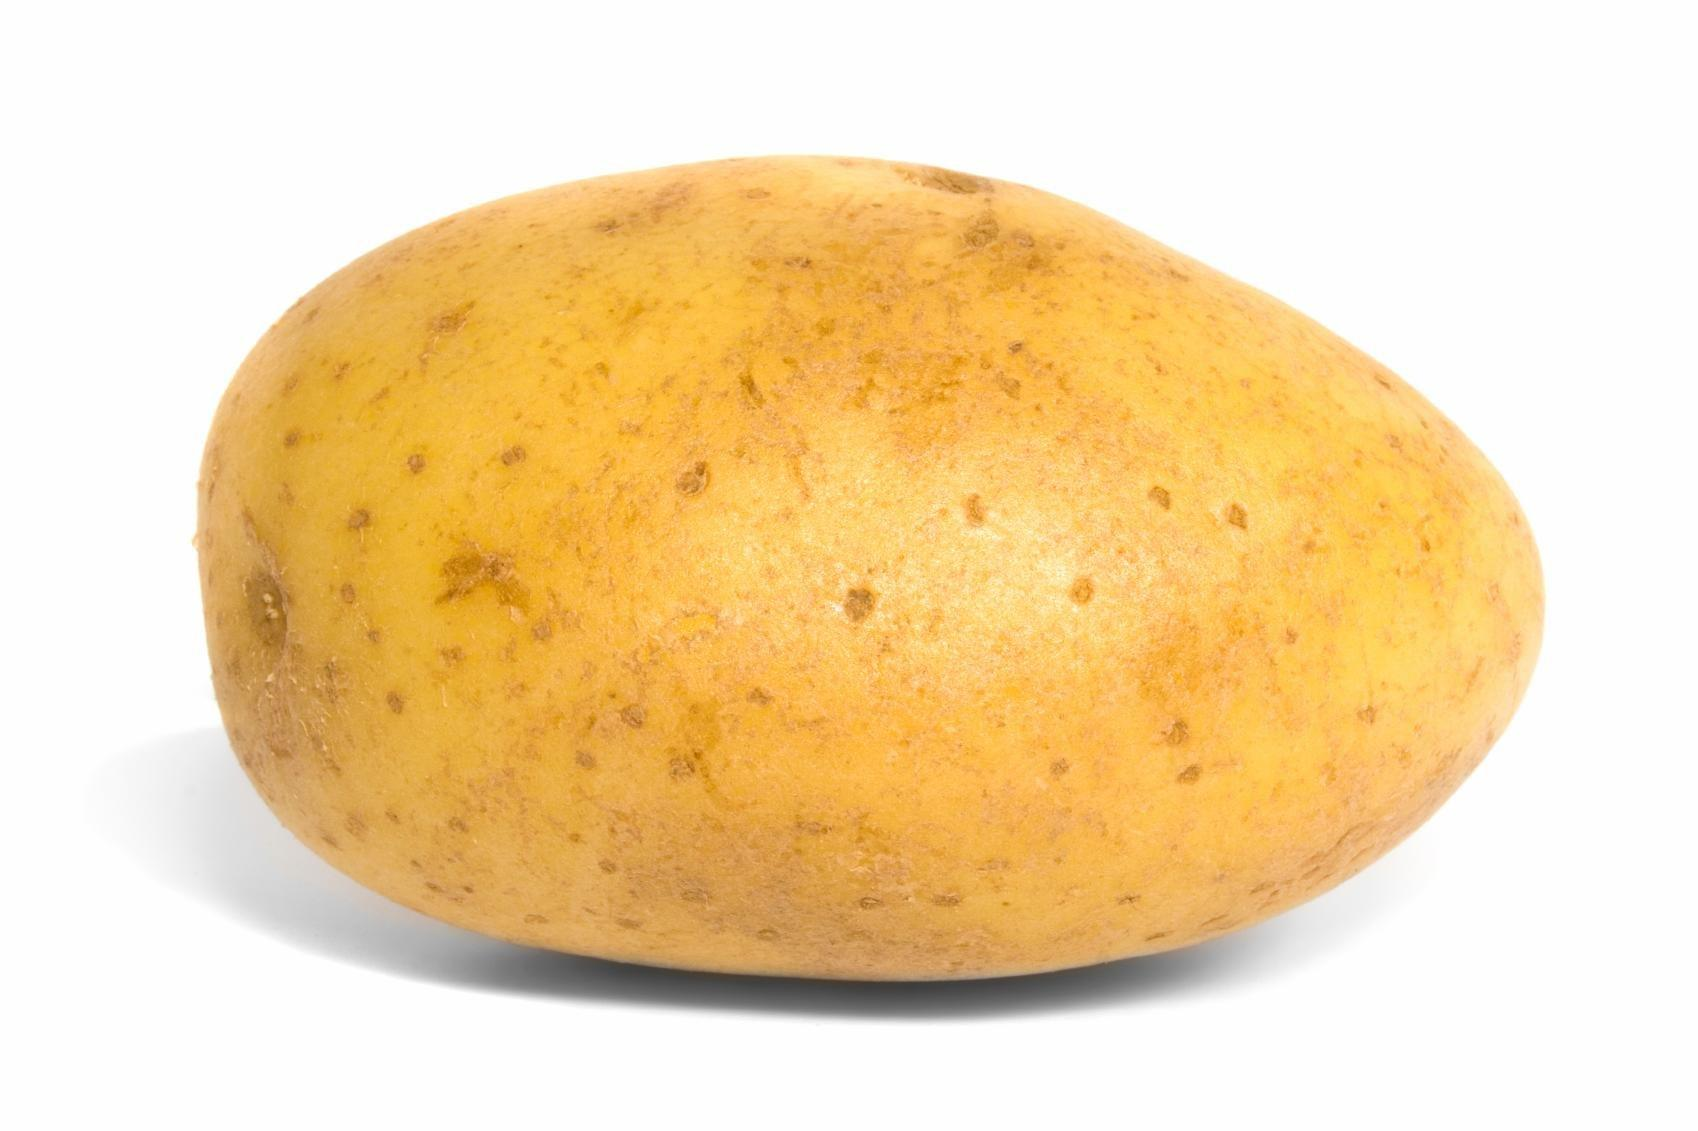 Half-baked Coverage Of Potatoes And Gestational Diabetes